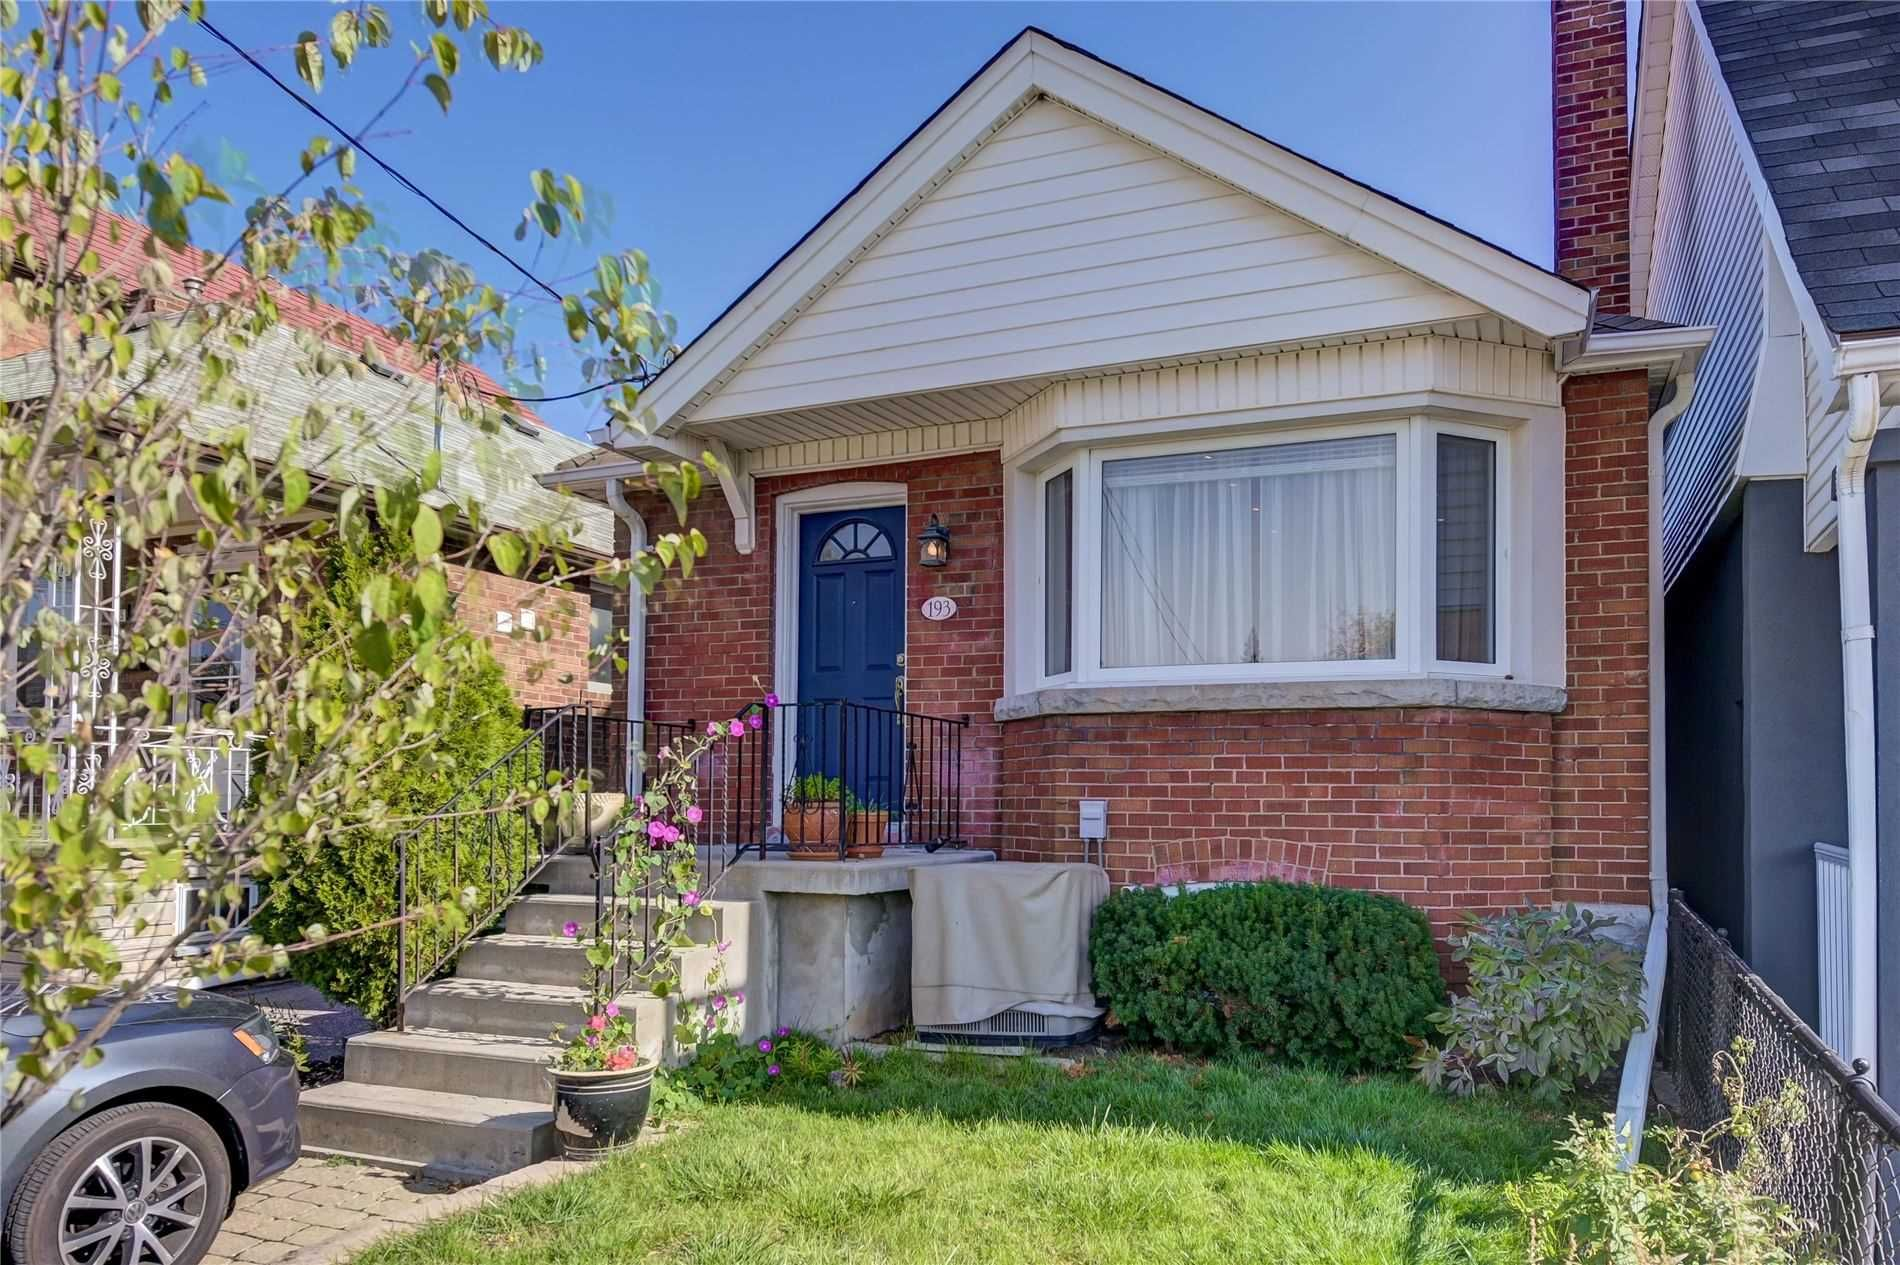 Main Photo: 193 Cedric Avenue in Toronto: Oakwood-Vaughan House (Bungalow) for sale (Toronto C03)  : MLS®# C4955329